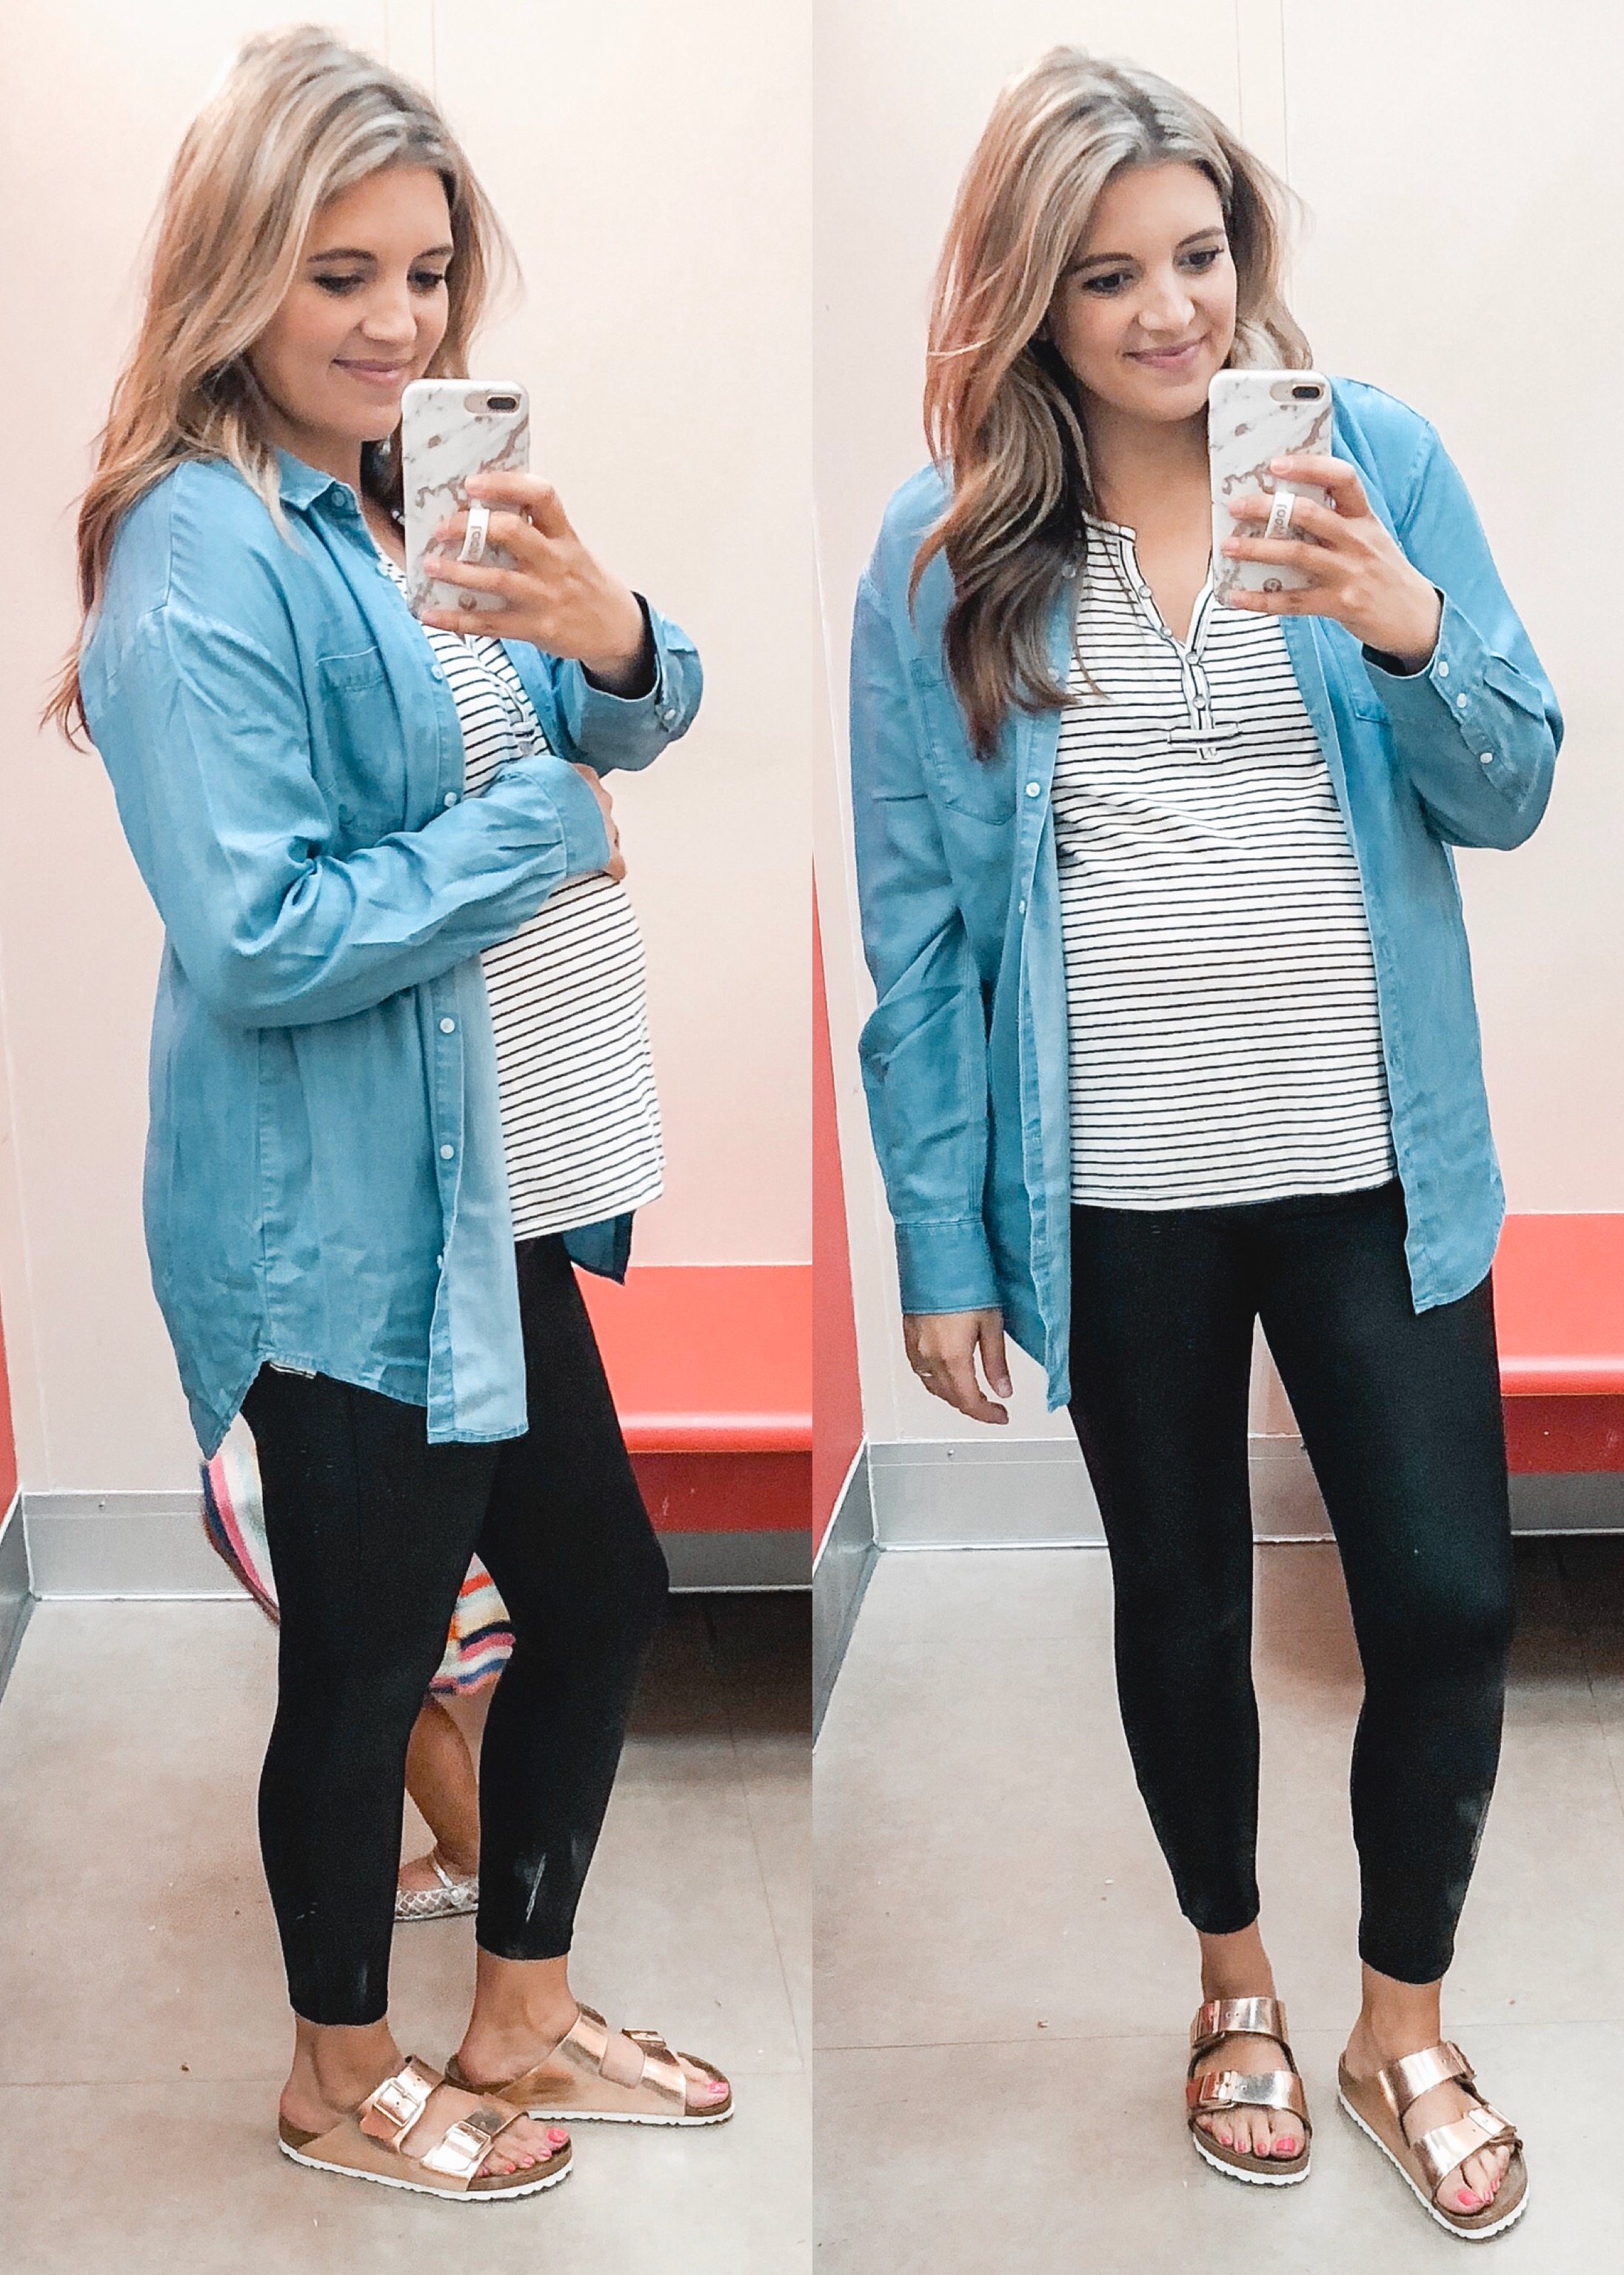 fall target clothing dressing room photos - 20+ universal thread dressing room review photos! | bylaurenm.com